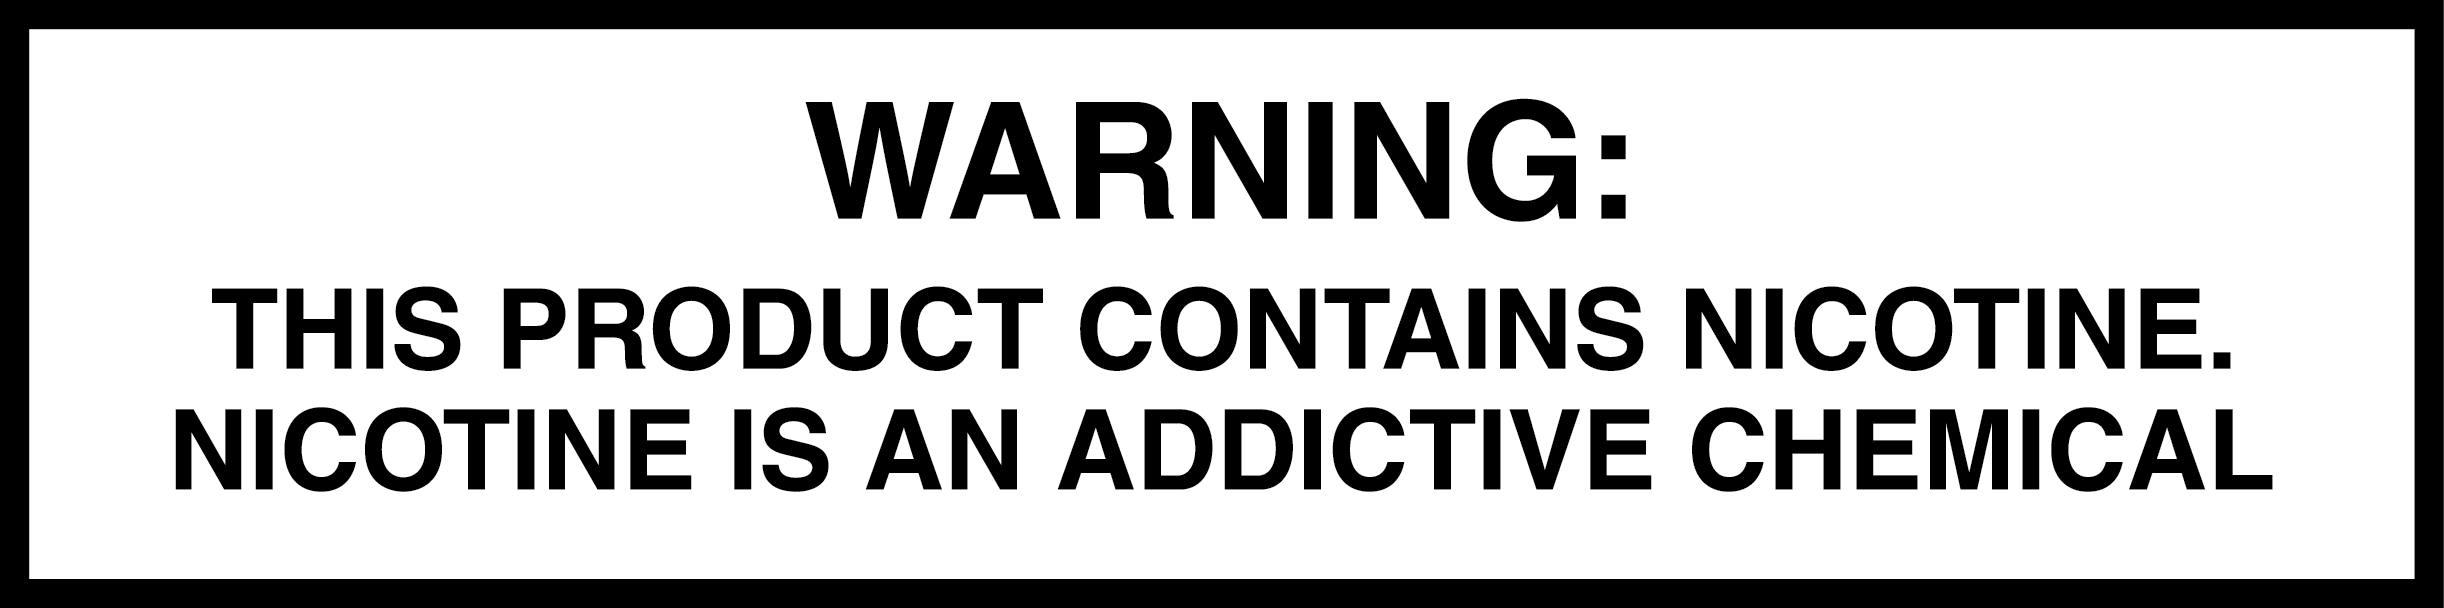 Nicotine Warning Statement